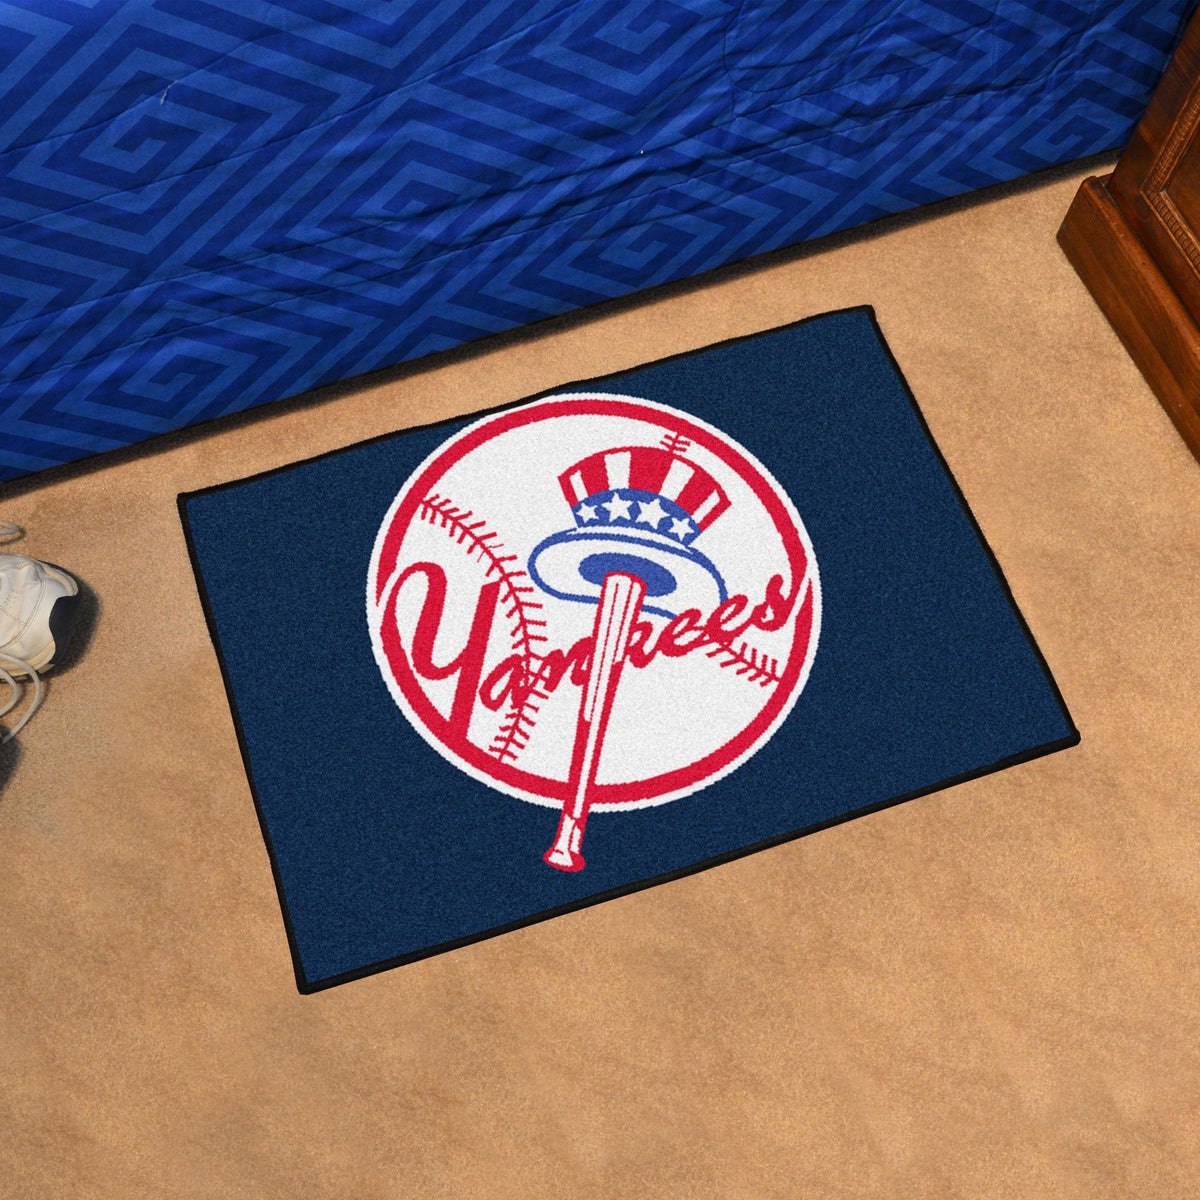 MLB - Starter Mat MLB Mats, Rectangular Mats, Starter Mat, MLB, Home Fan Mats New York Yankees 2